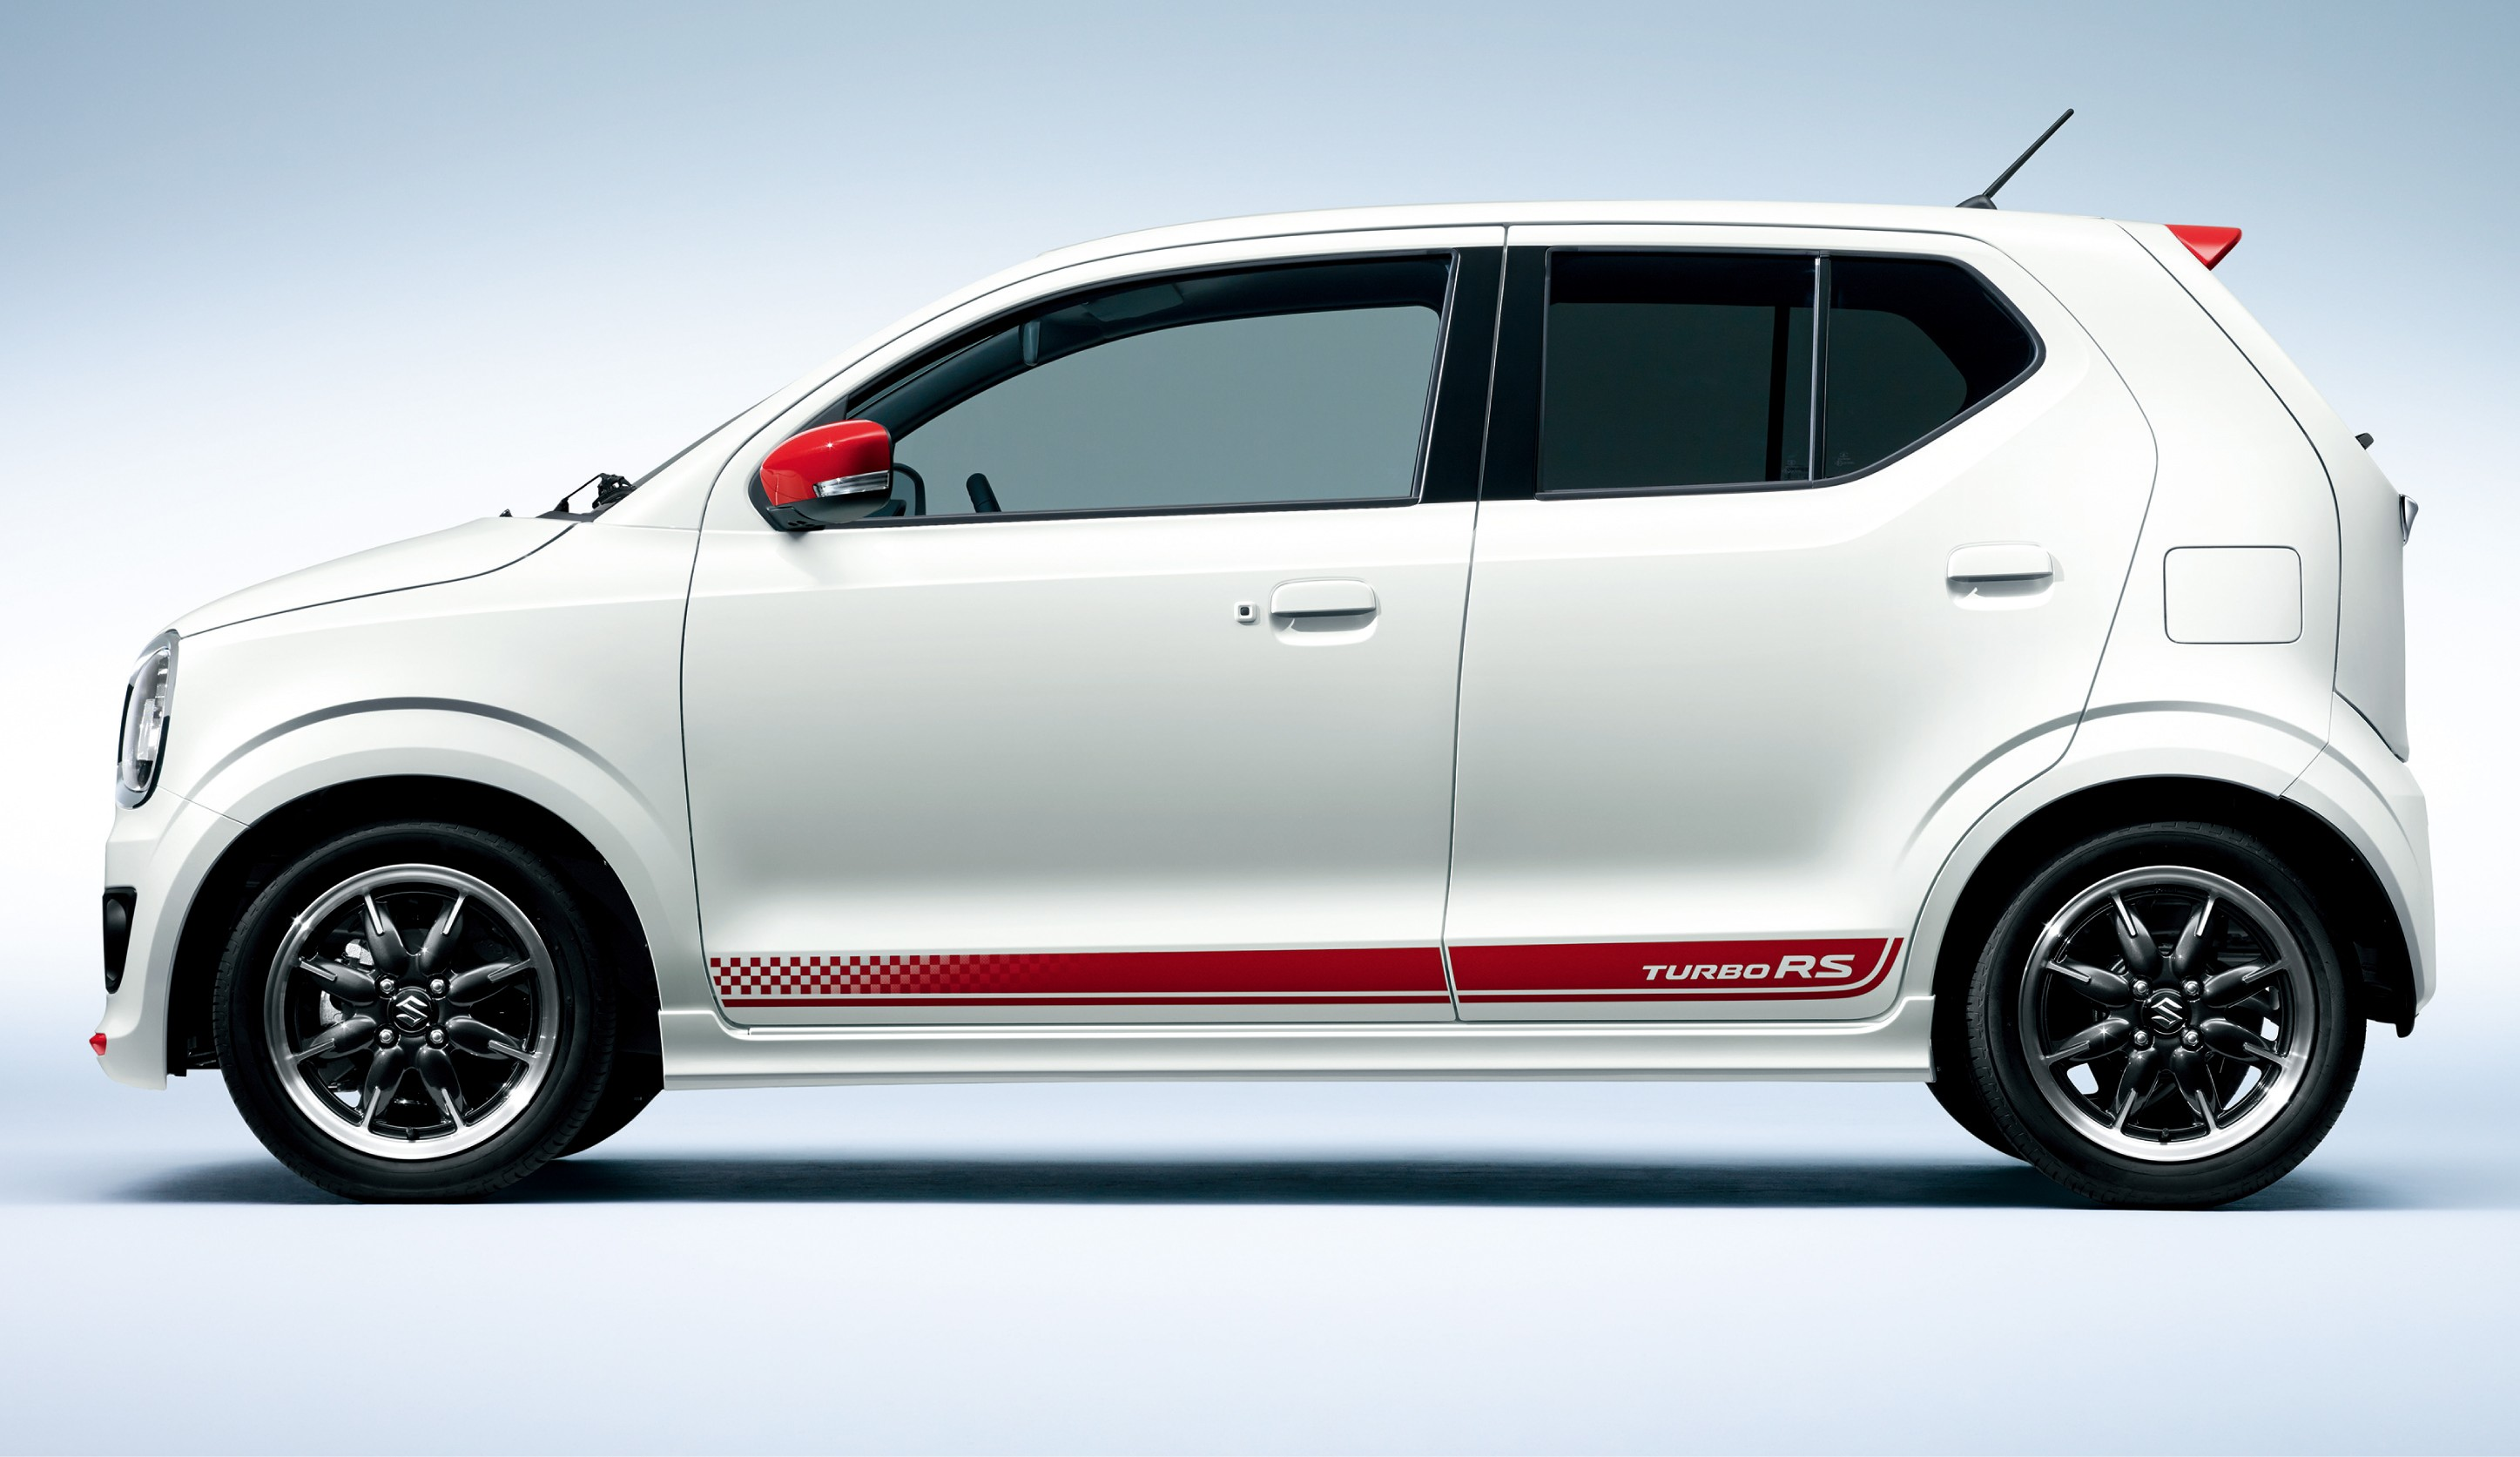 2015 Suzuki Alto Turbo Rs Is Pocket Racer From Japan